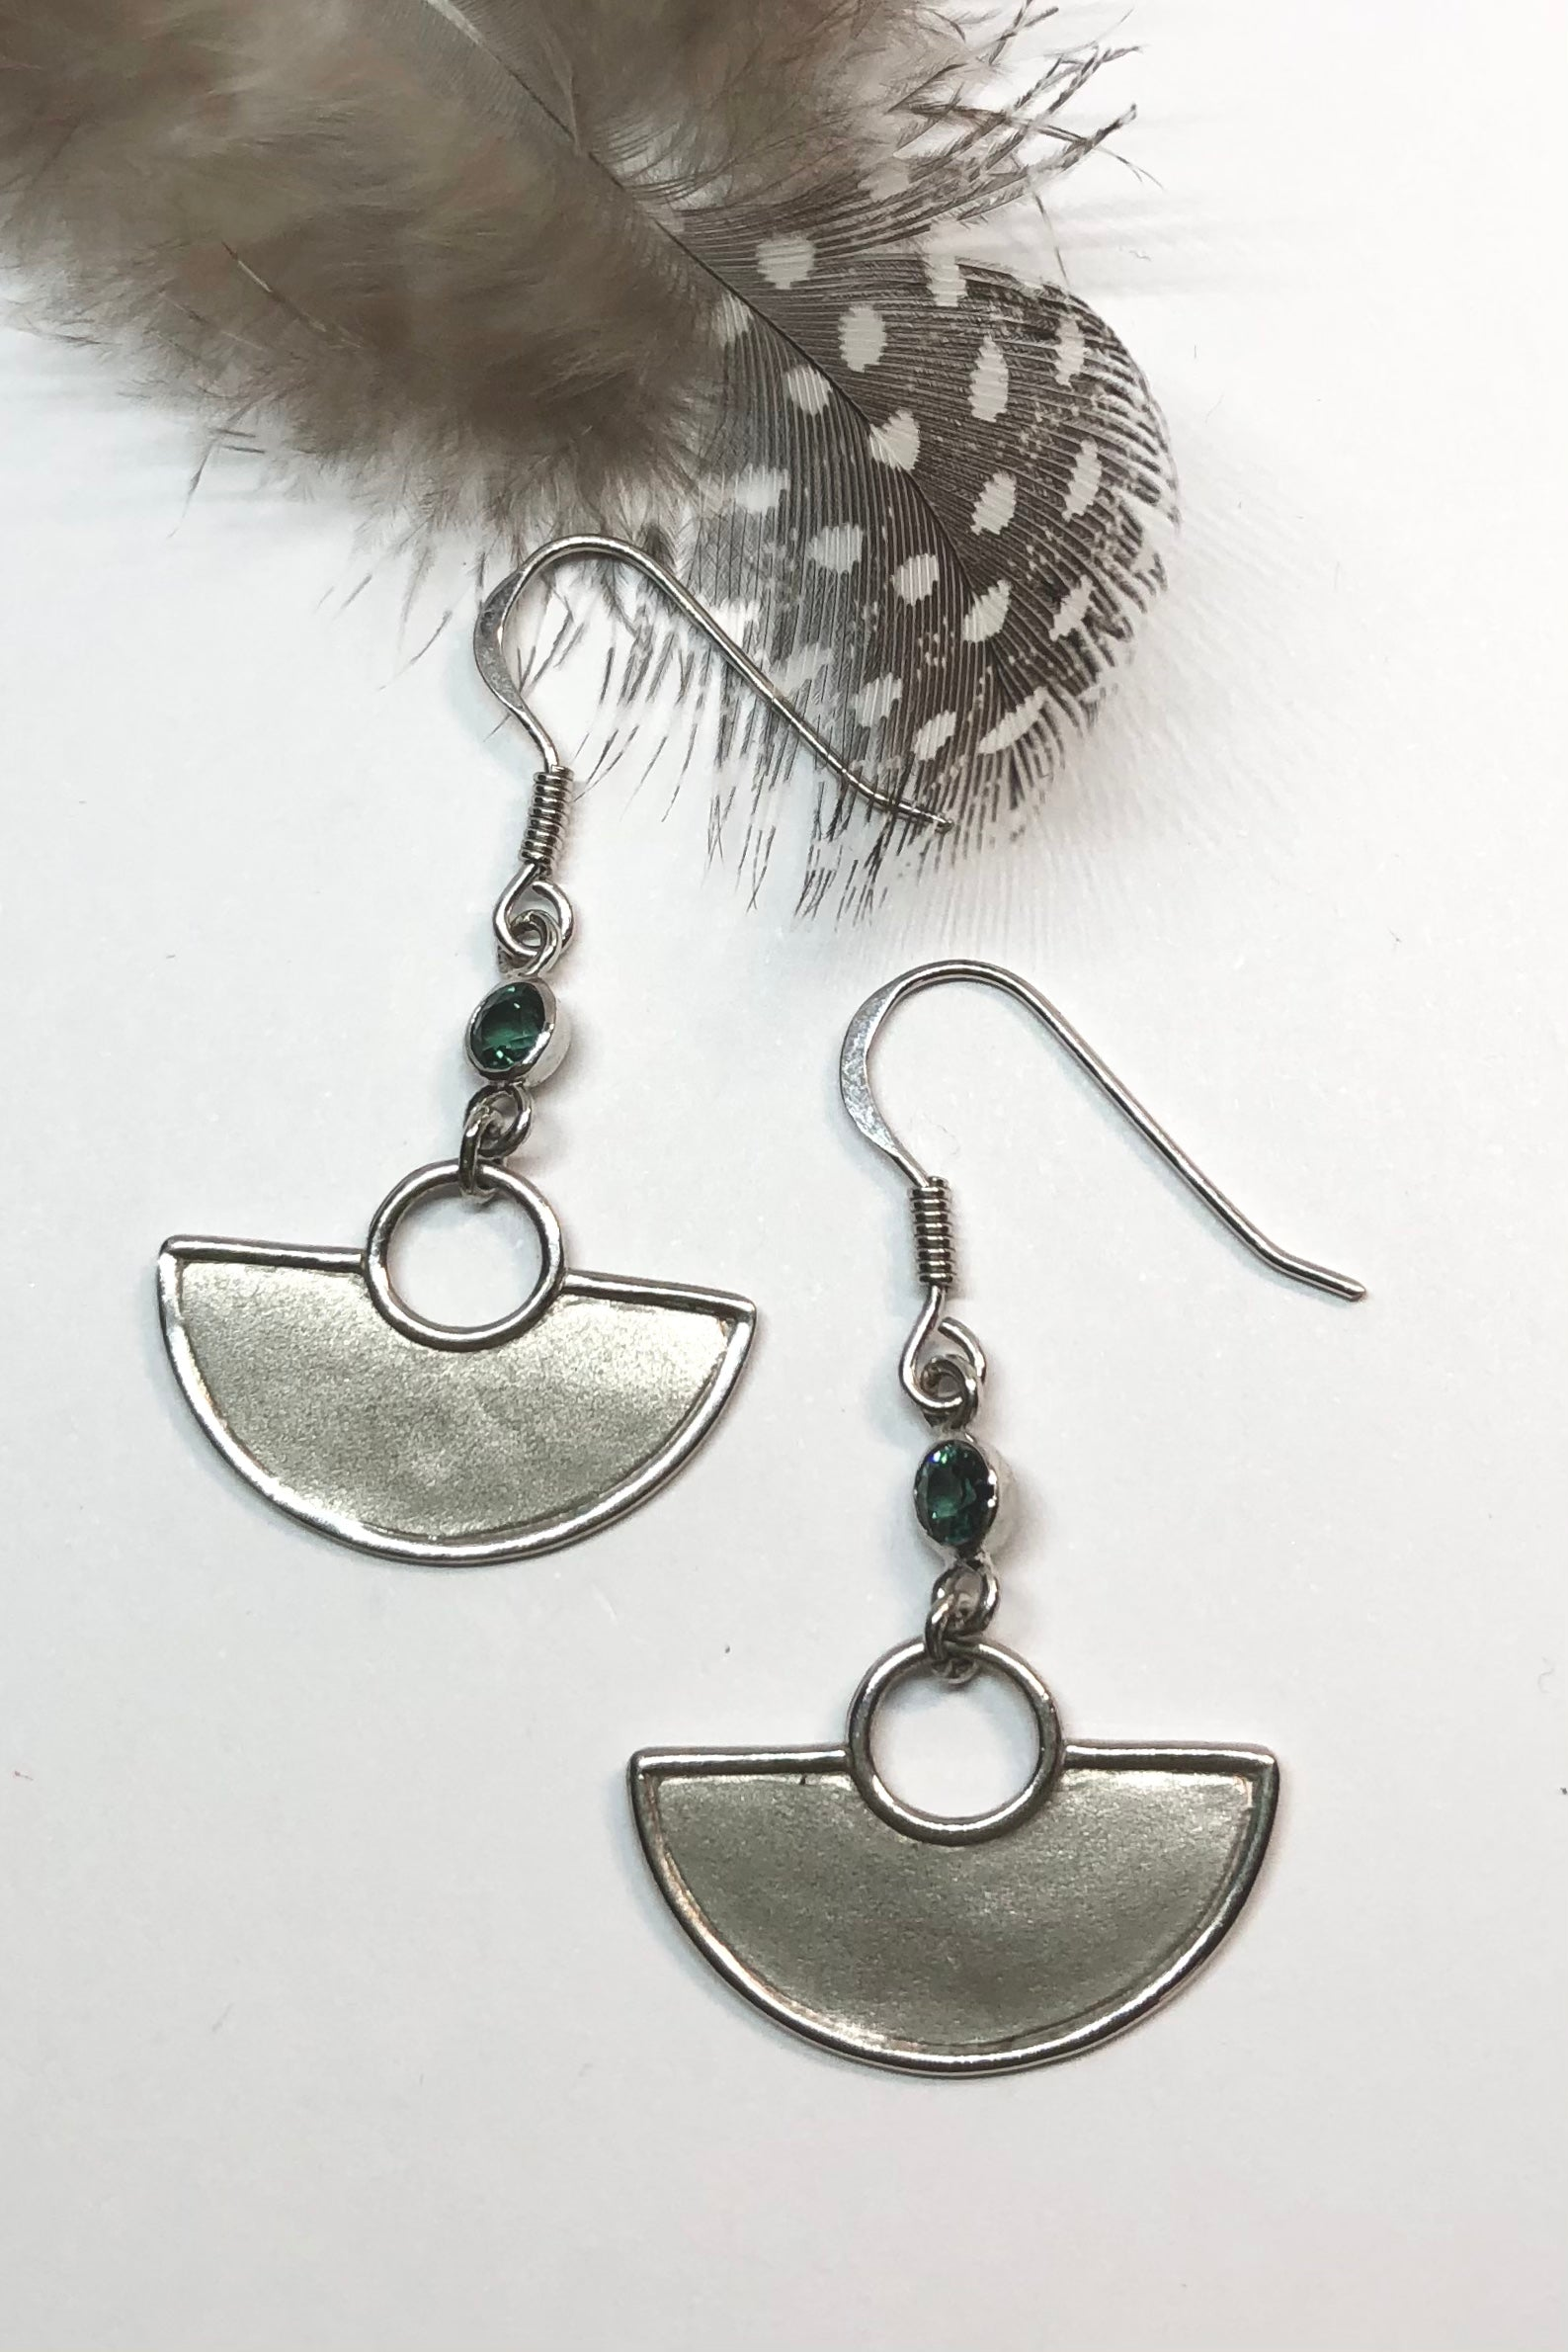 African Style 925 silver Earrings with a Tourmaline gemstone which hangs perfectly from a silver circle.